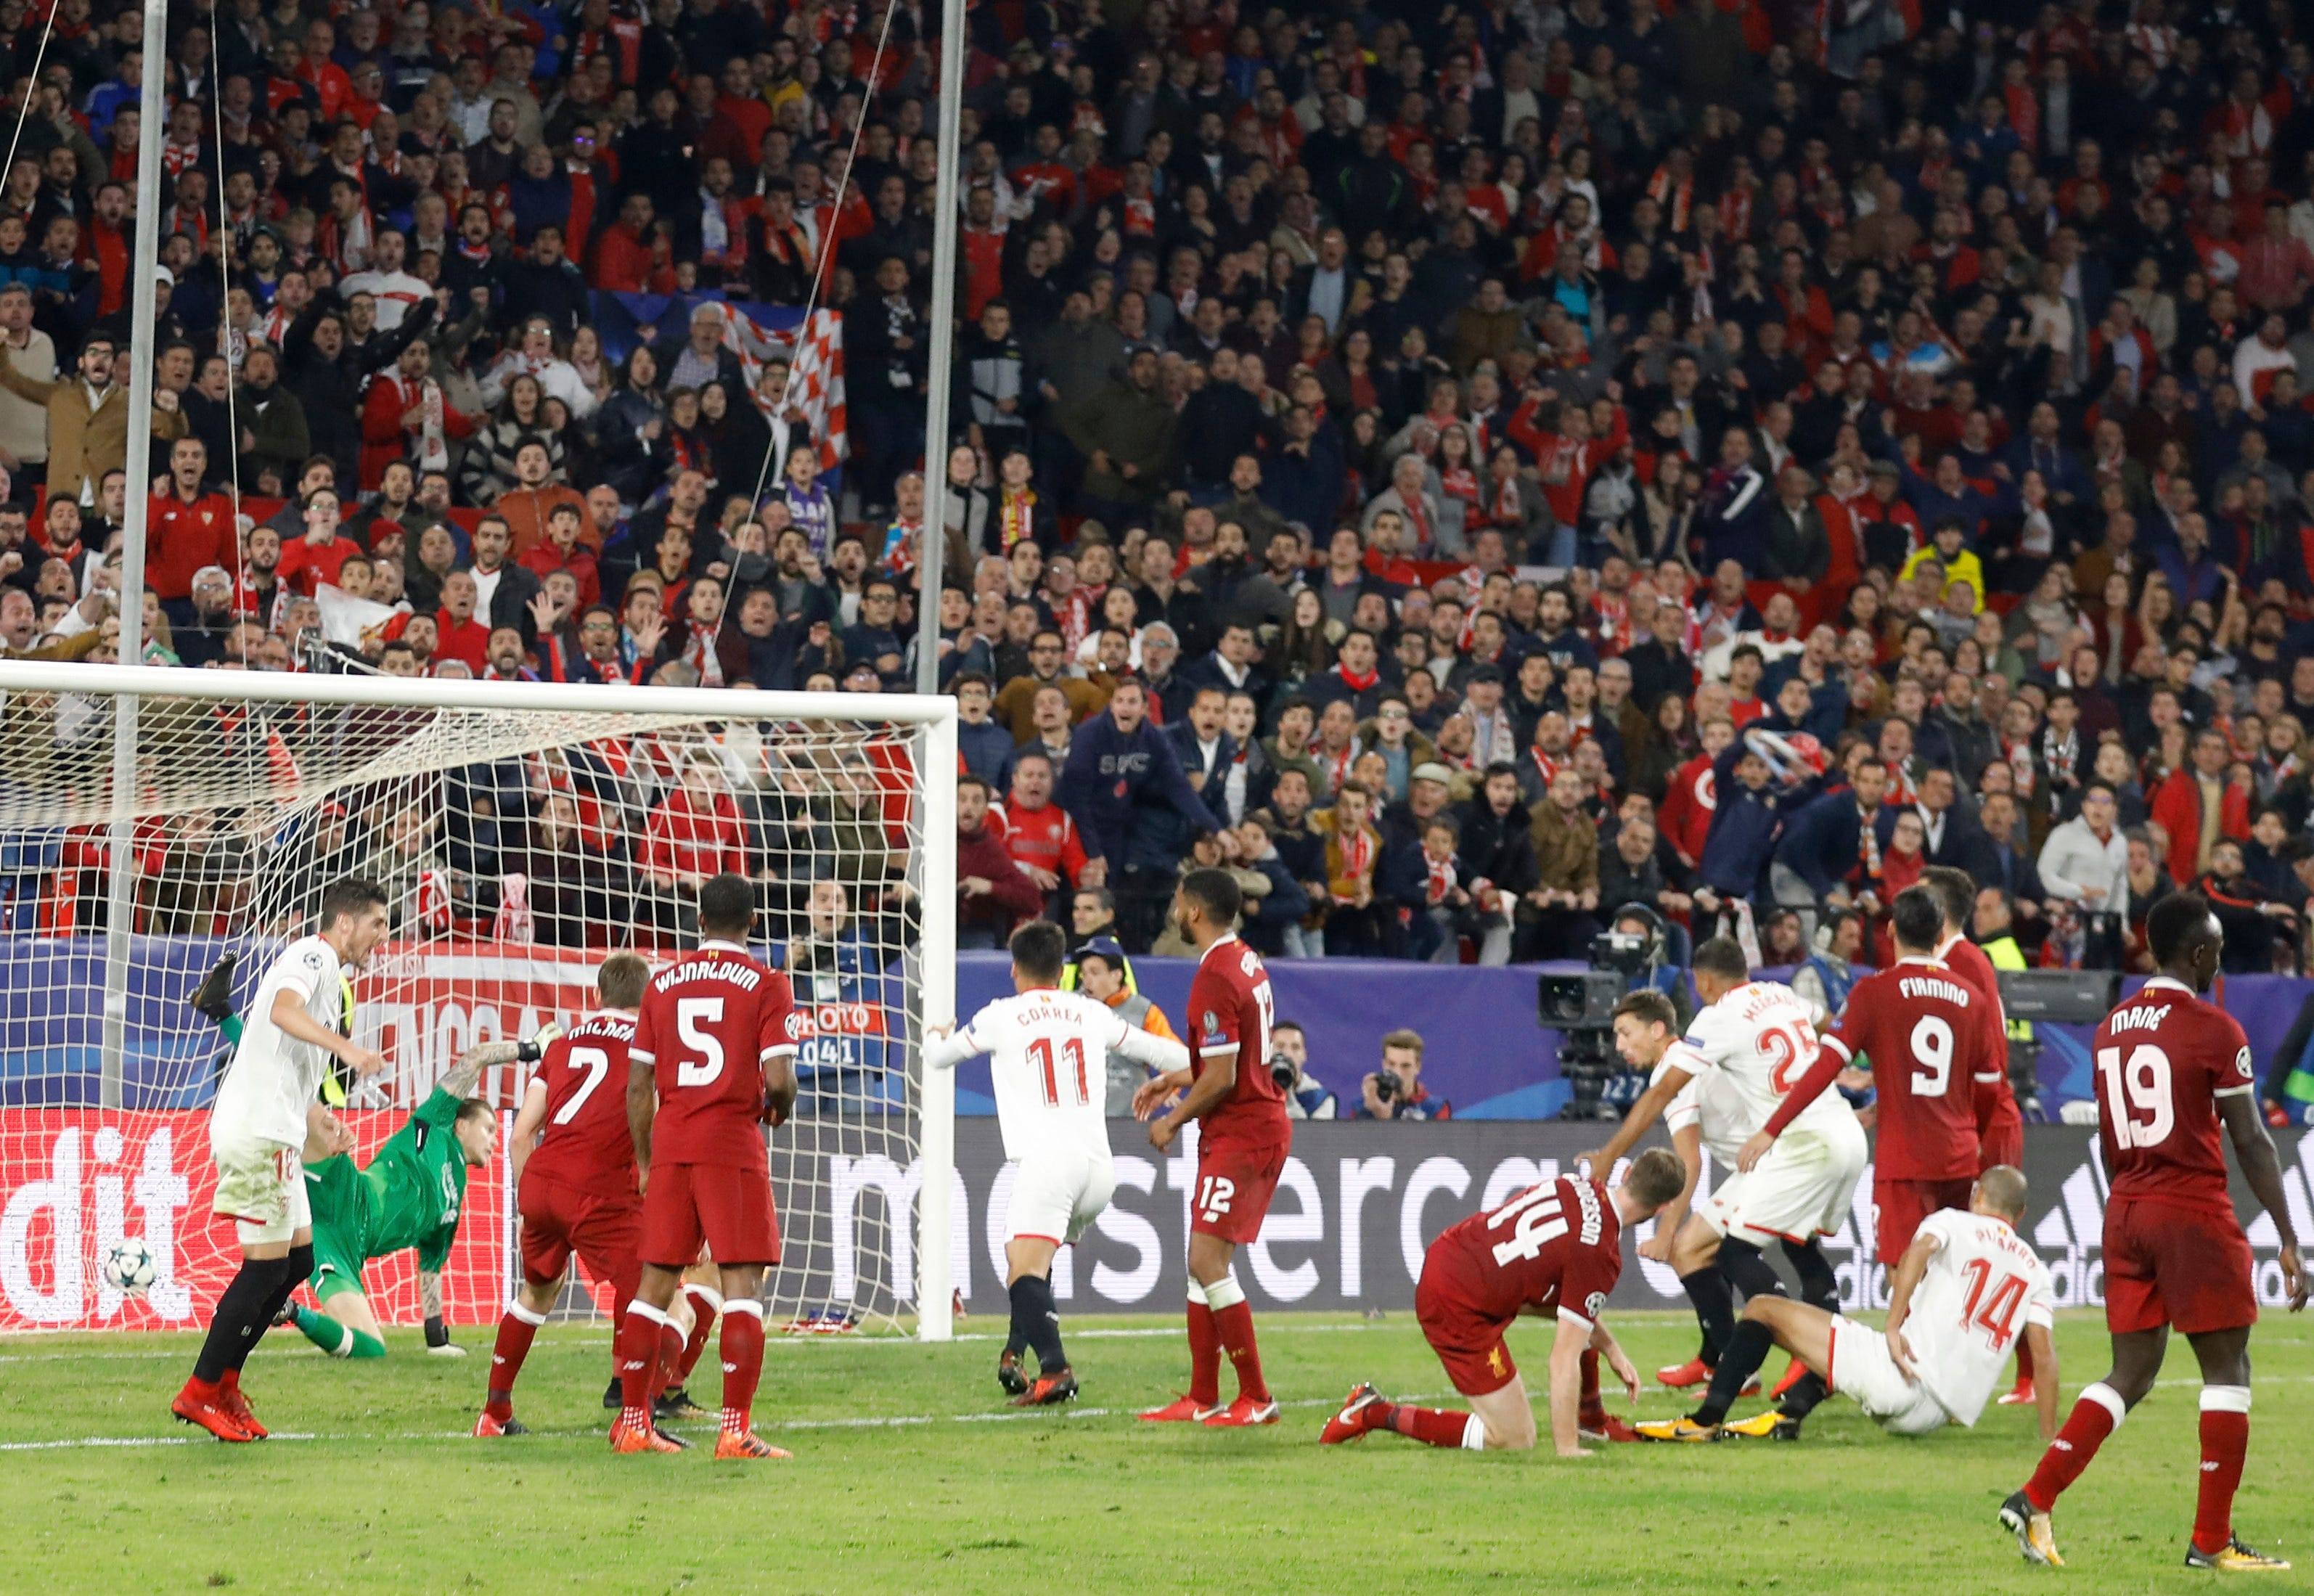 Sevilla draws after Liverpool wastes 3-goal lead in CL